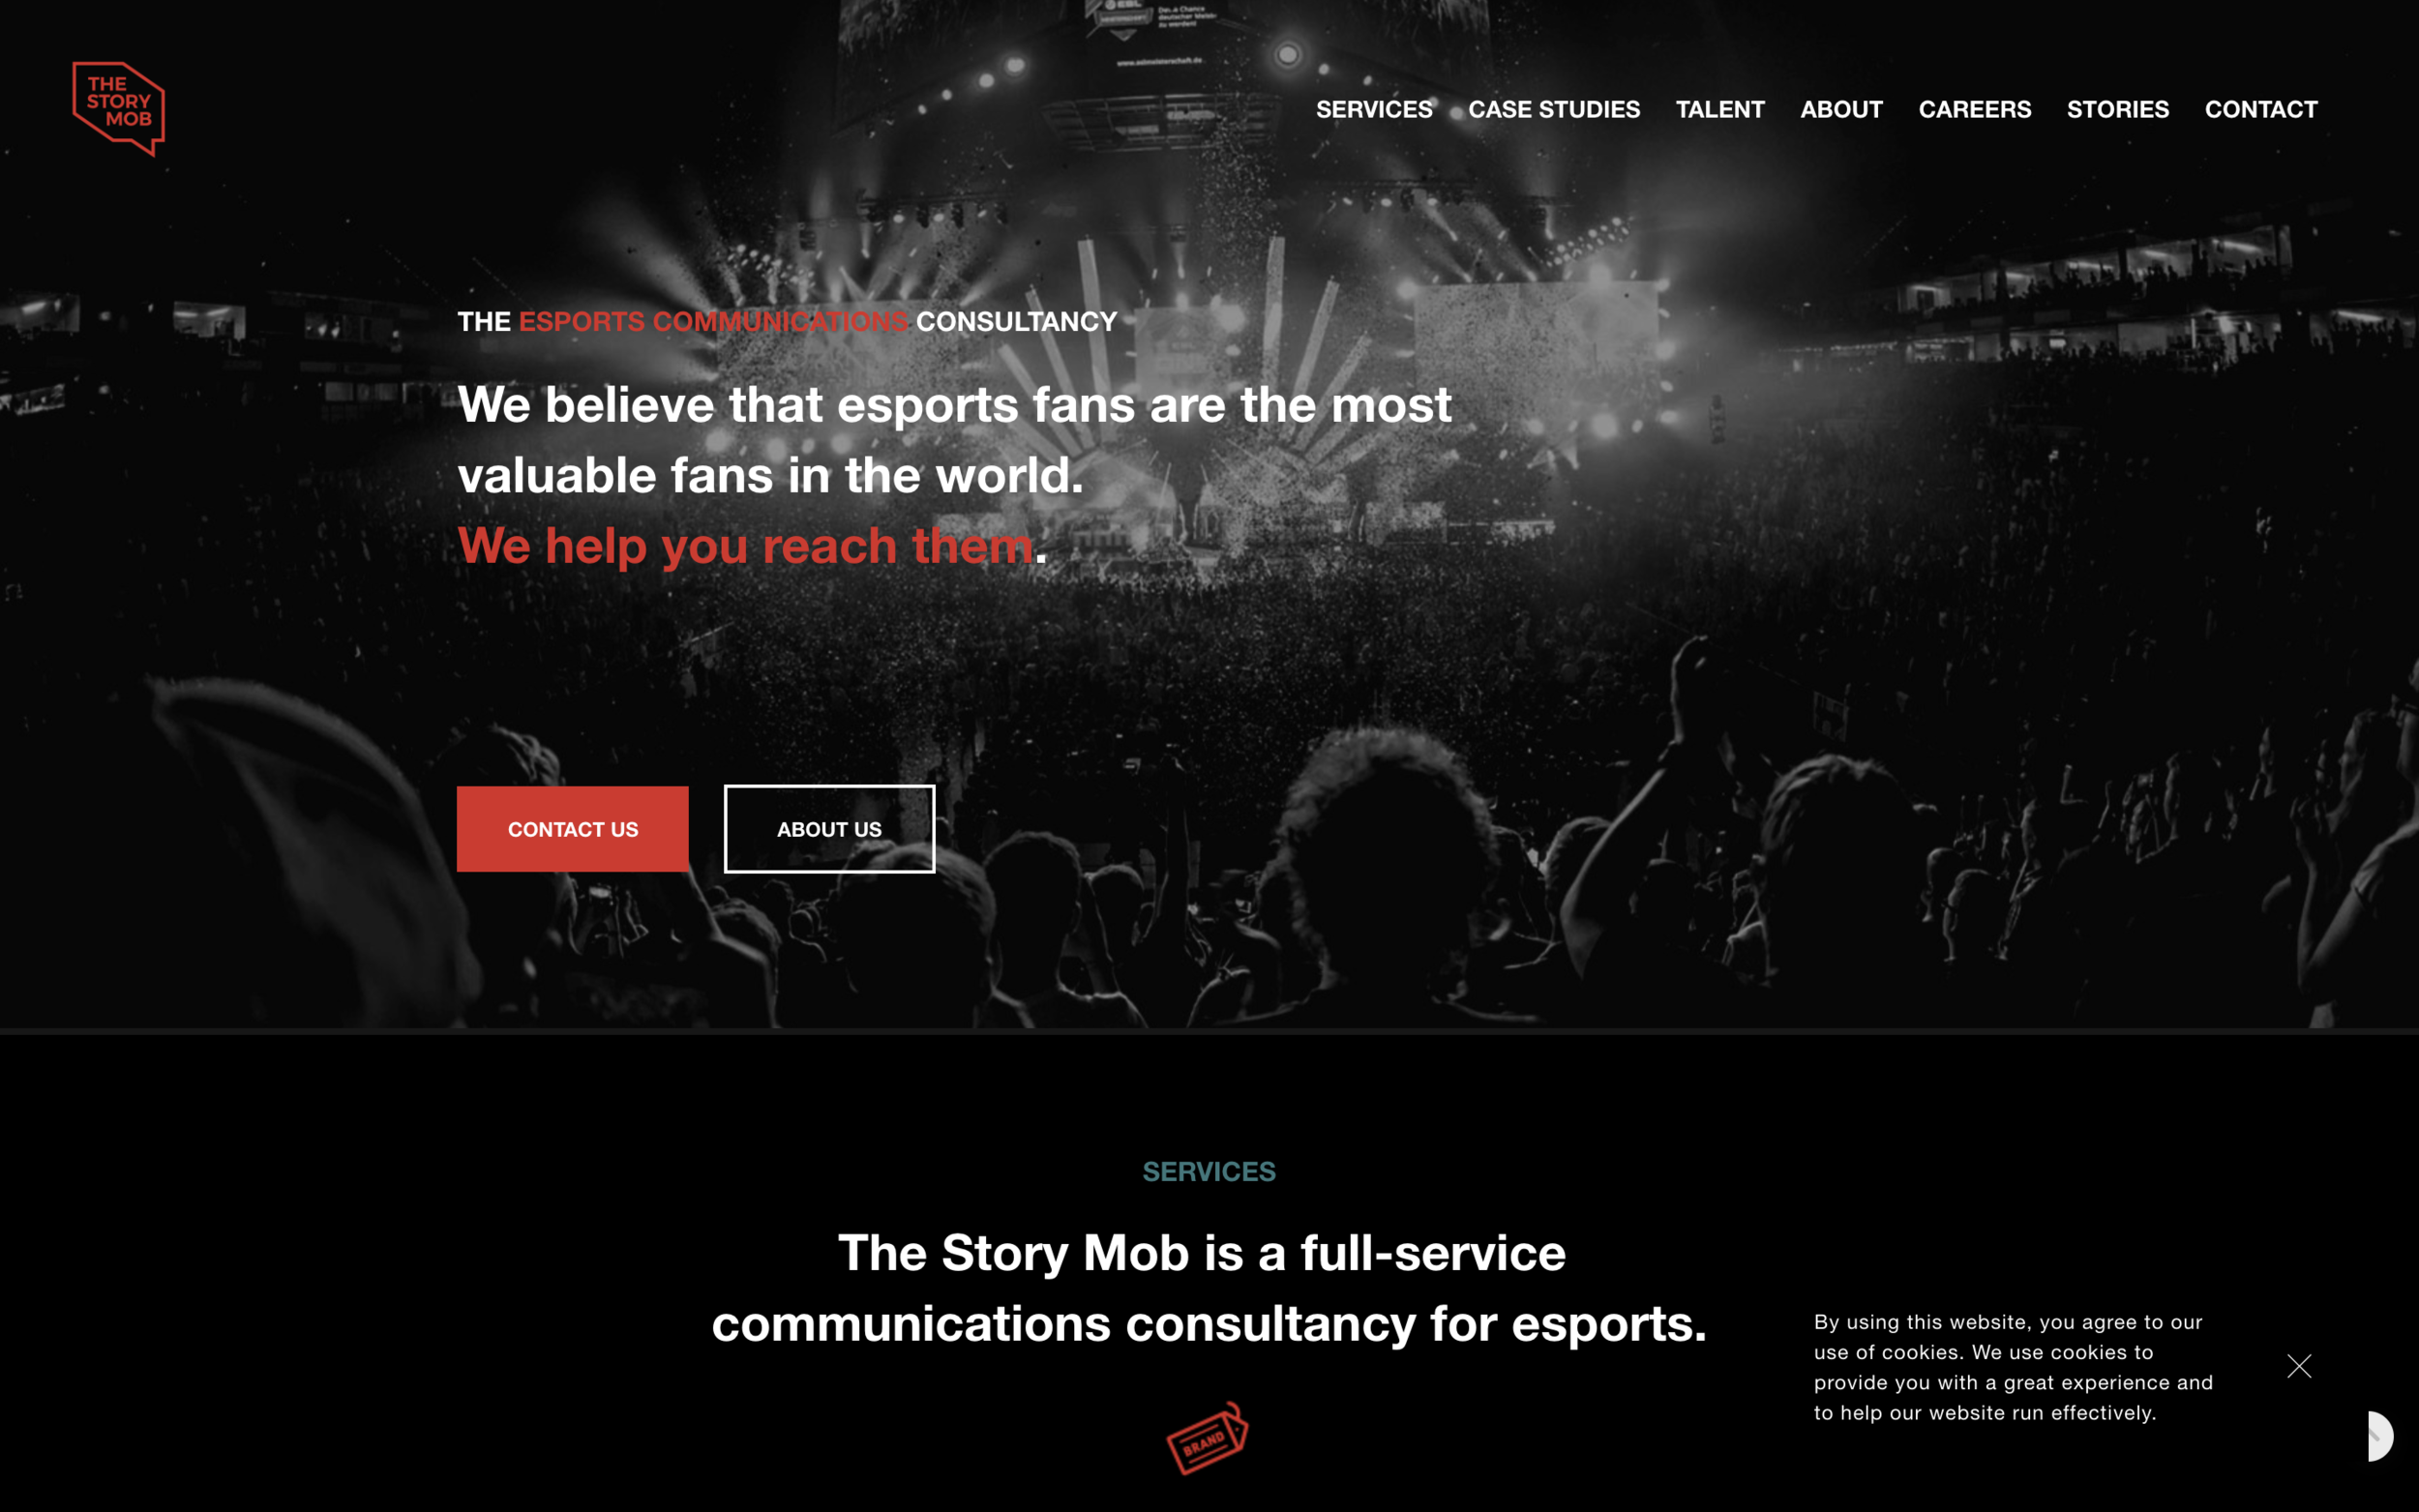 thestorymob.com - The Story Mob Squarespace Website DesignThe Story Mob needed a robust website. With Squarespace, we were able to provide the advanced functionality they needed and a website that is beautifully designed and fully responsive.